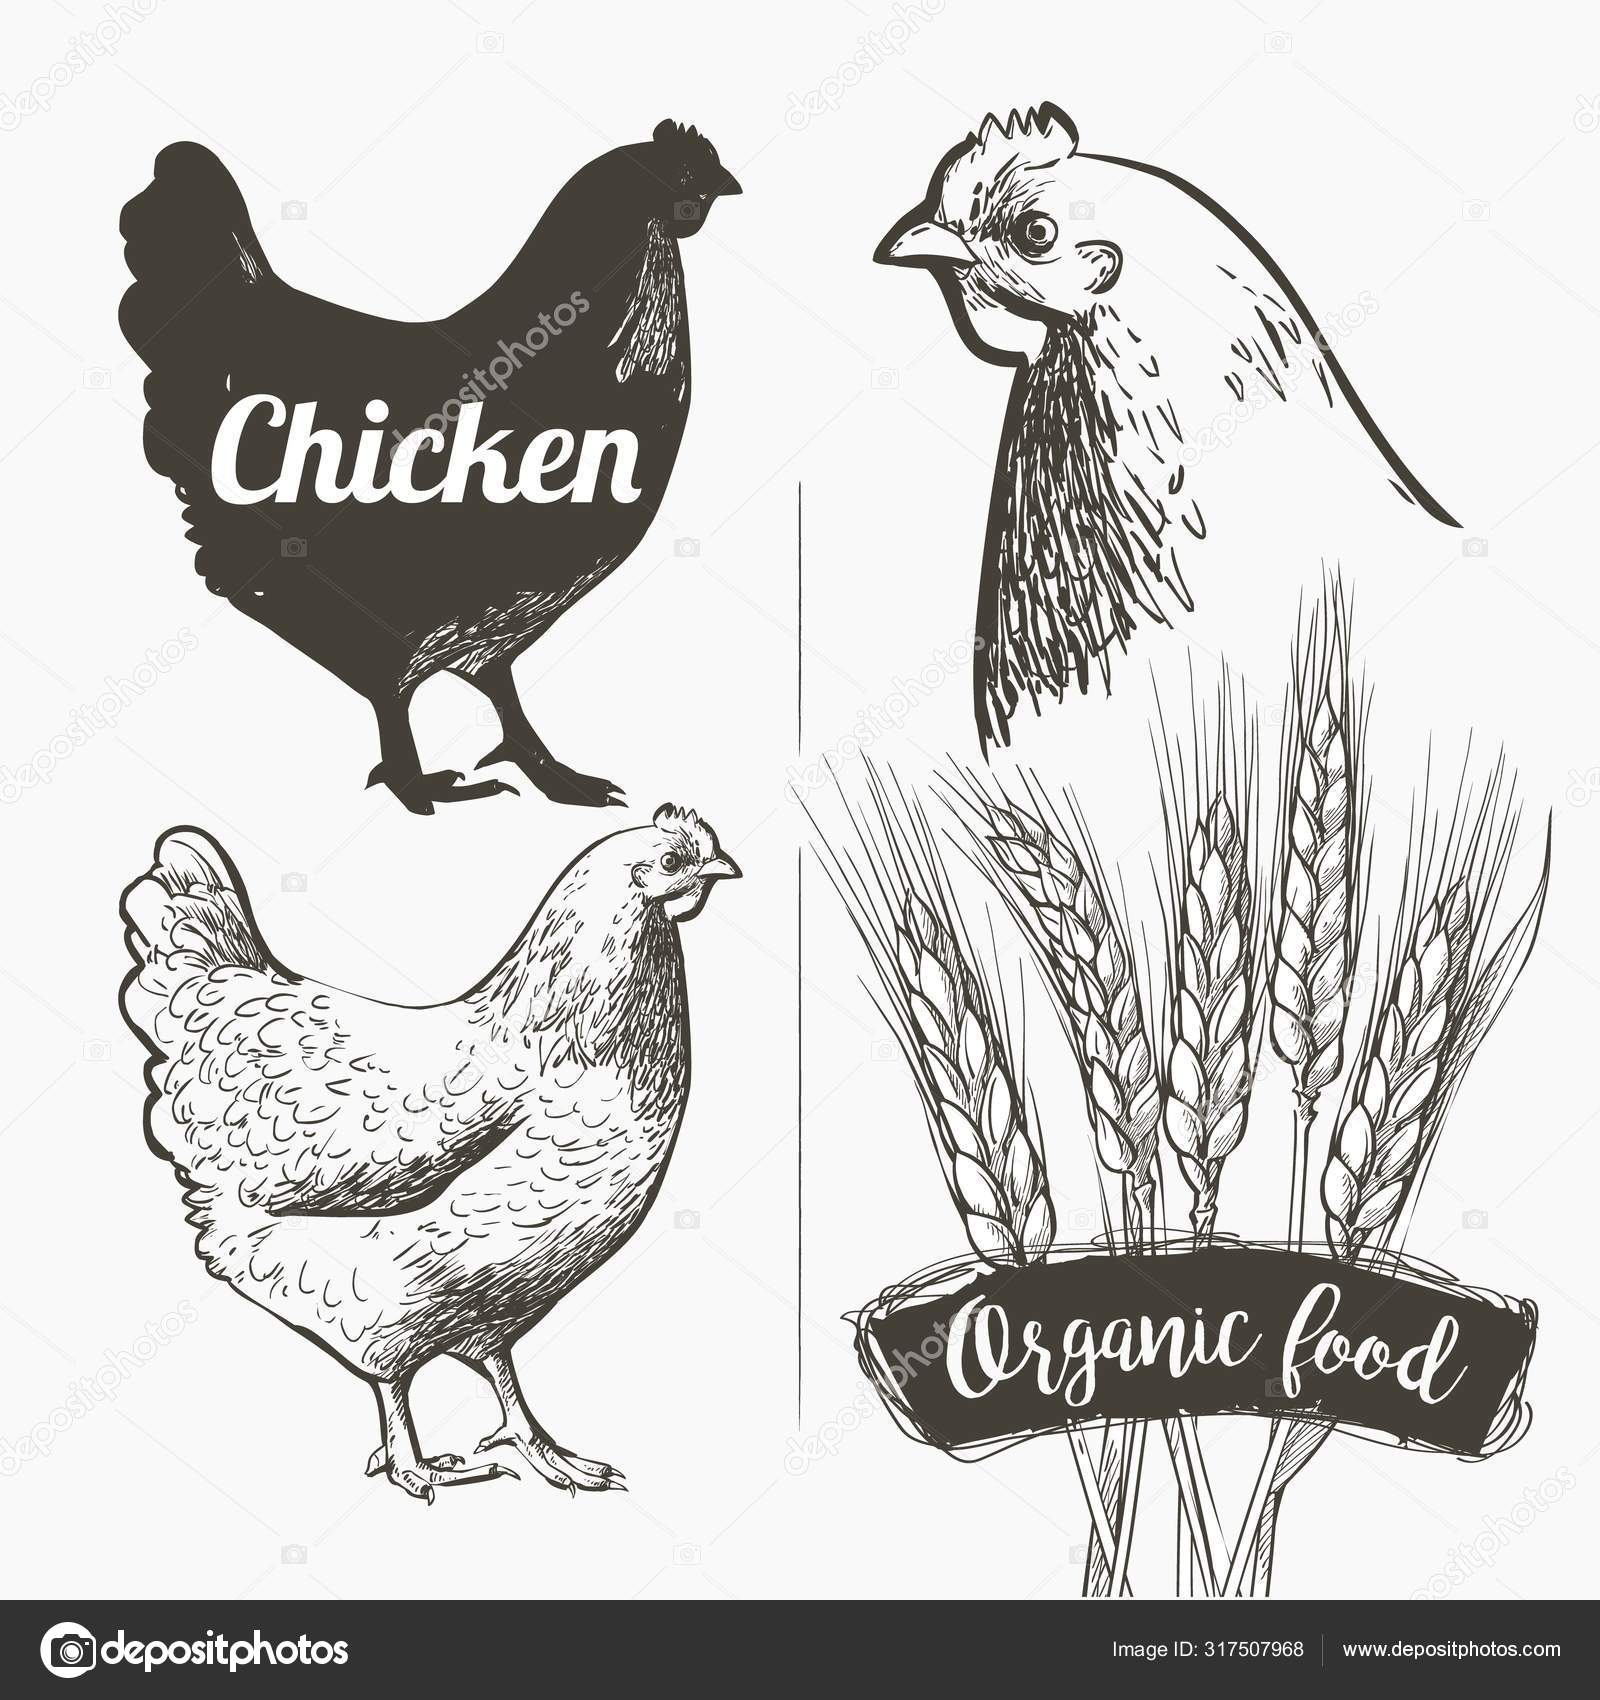 Chicken Silhouette White : Download 11,000+ royalty free